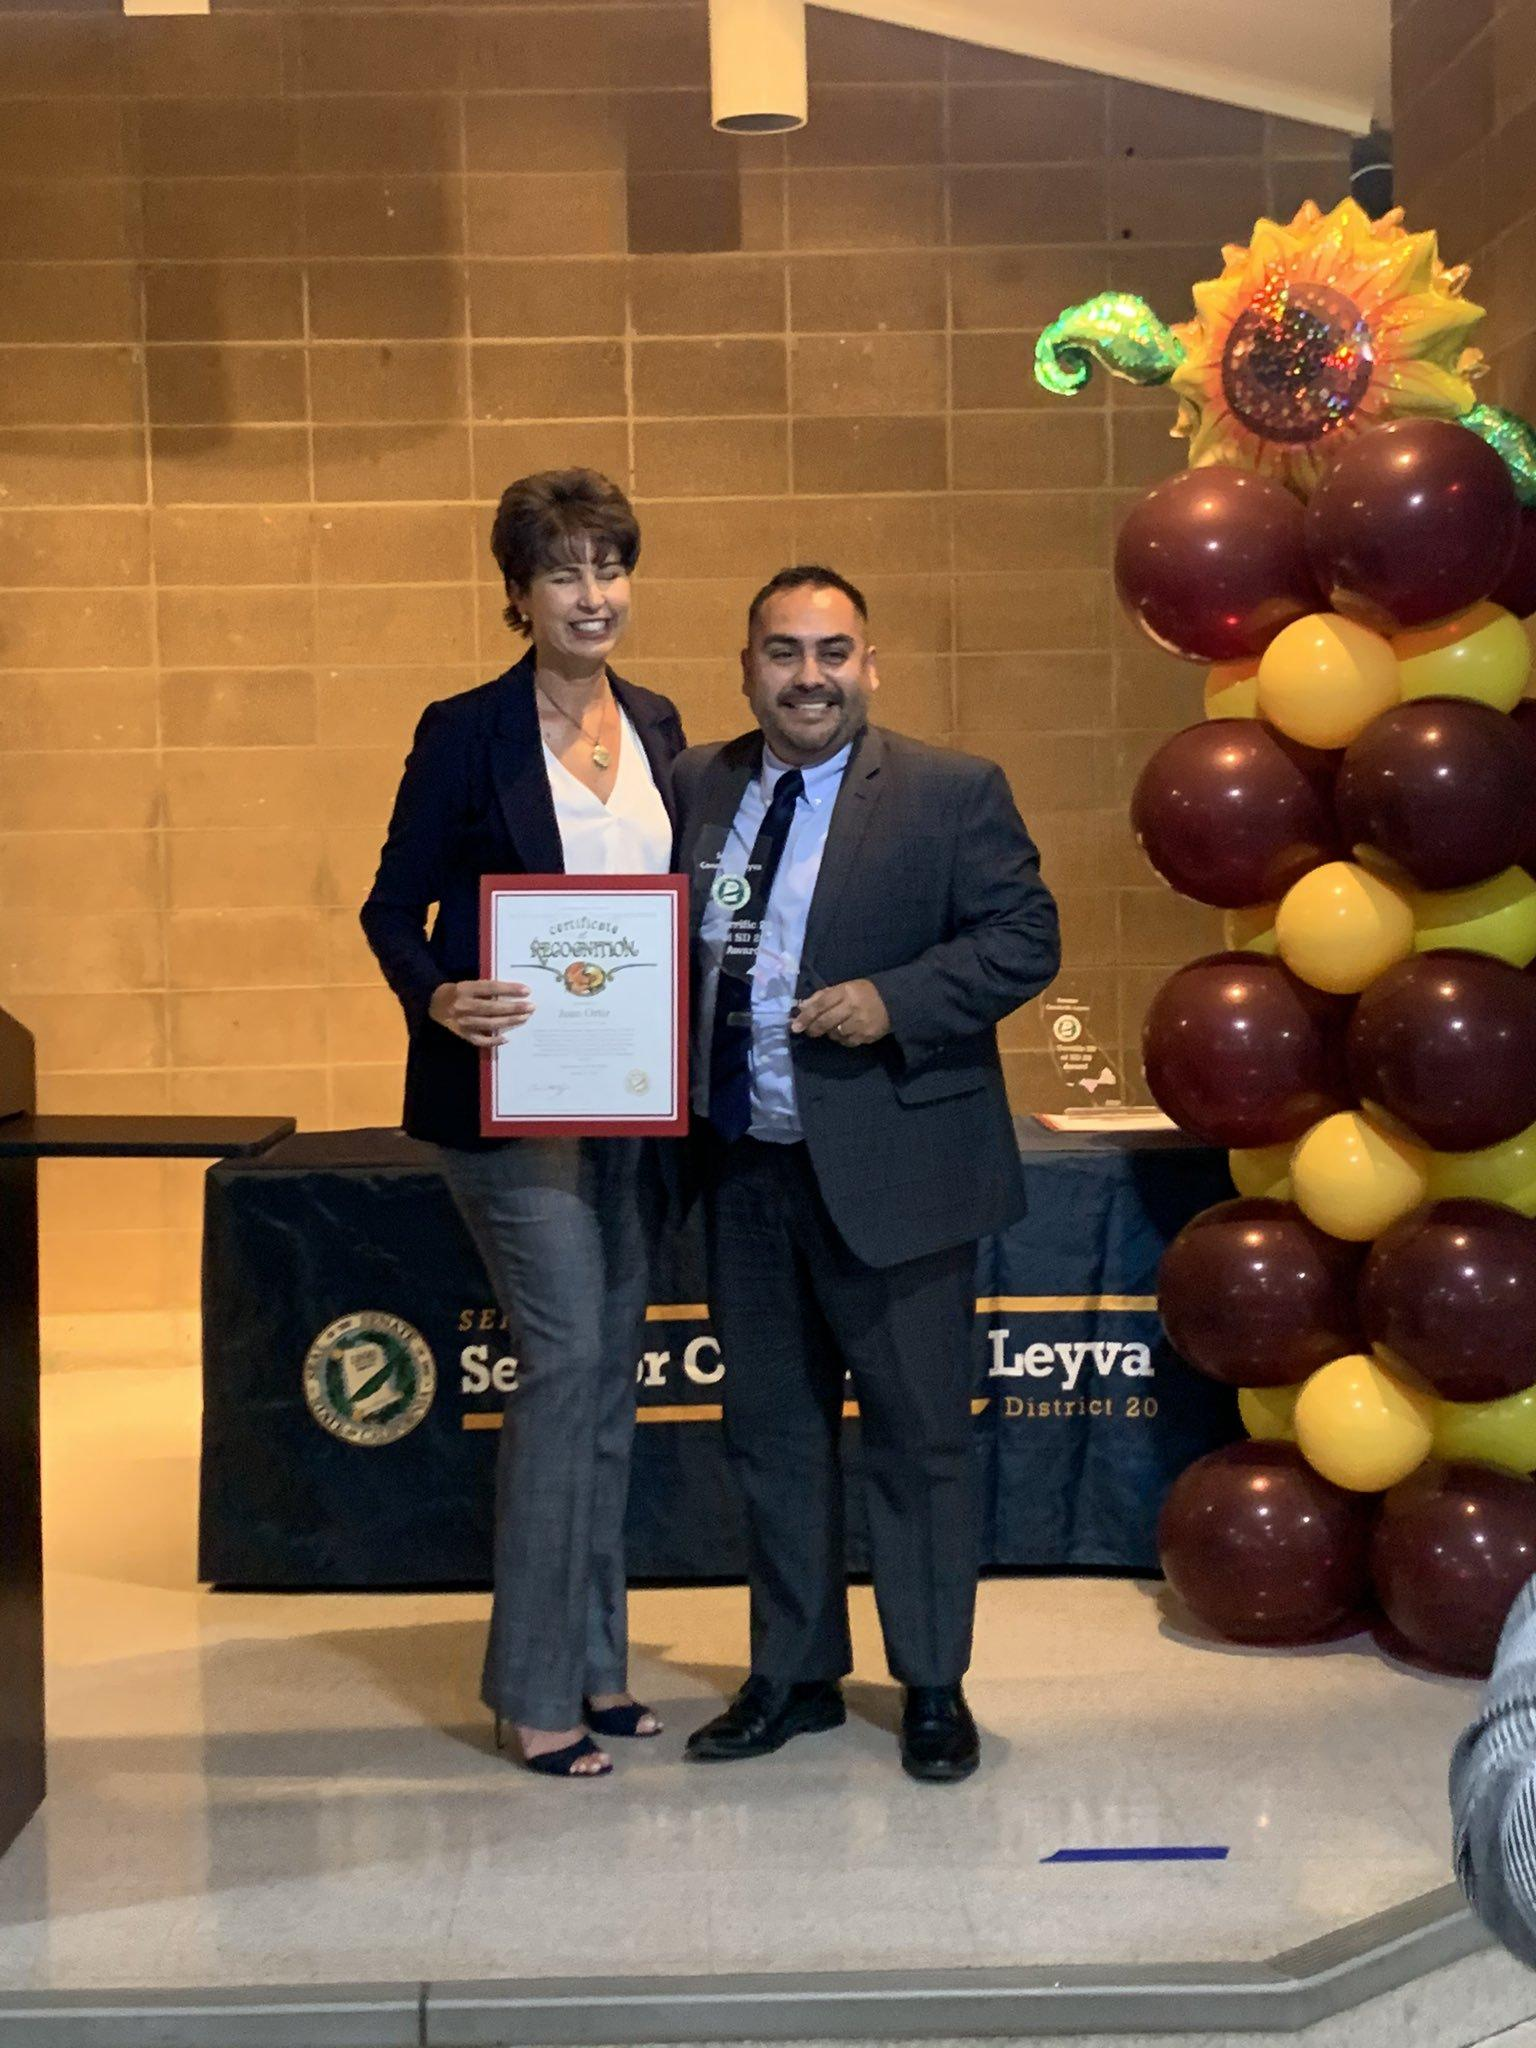 Pictured senator leyva and juan ortiz receiving certificate